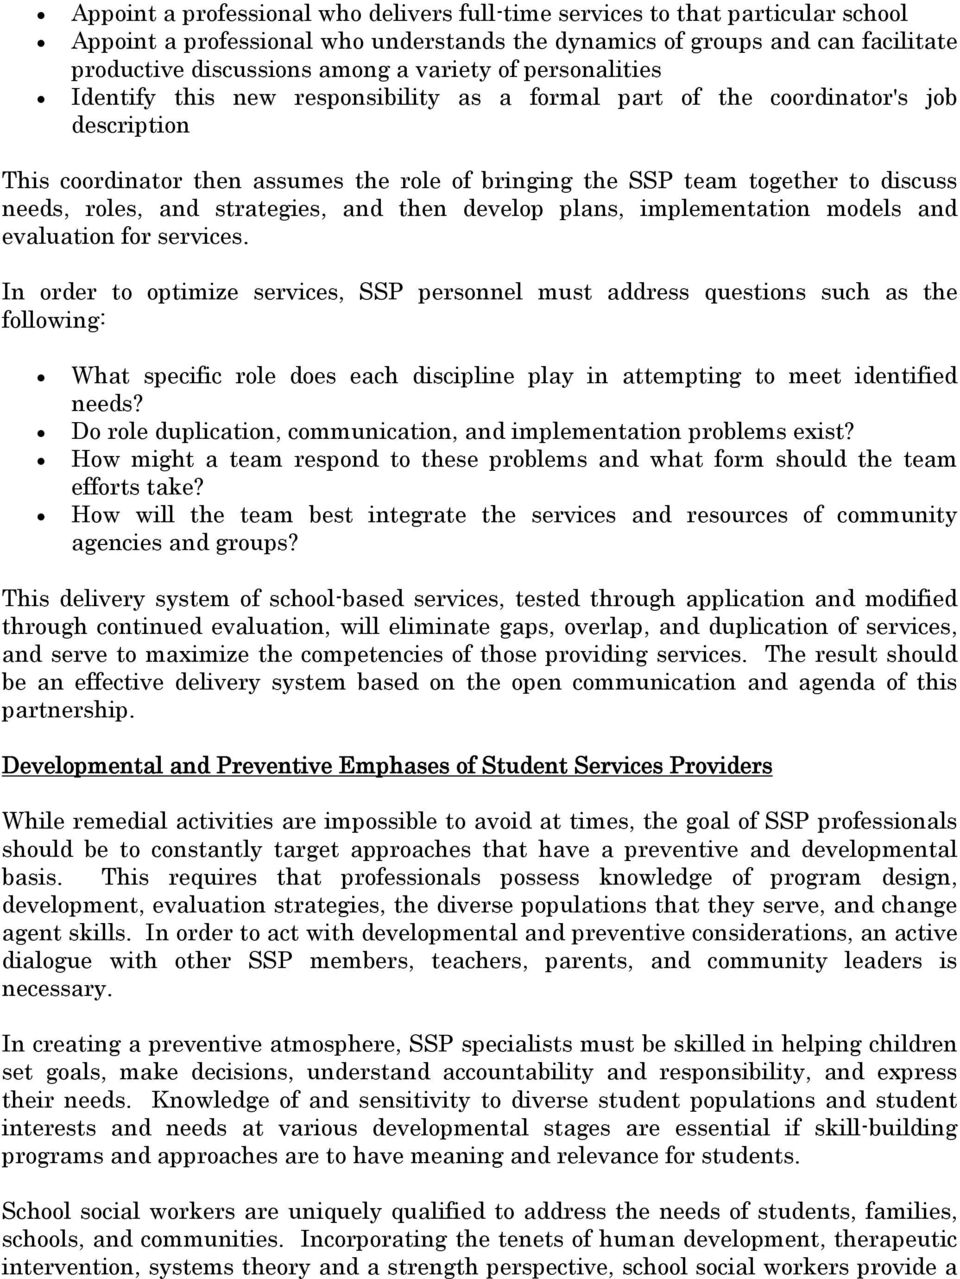 Student Services Providers Recommended Practices Procedures – Social Worker Job Description